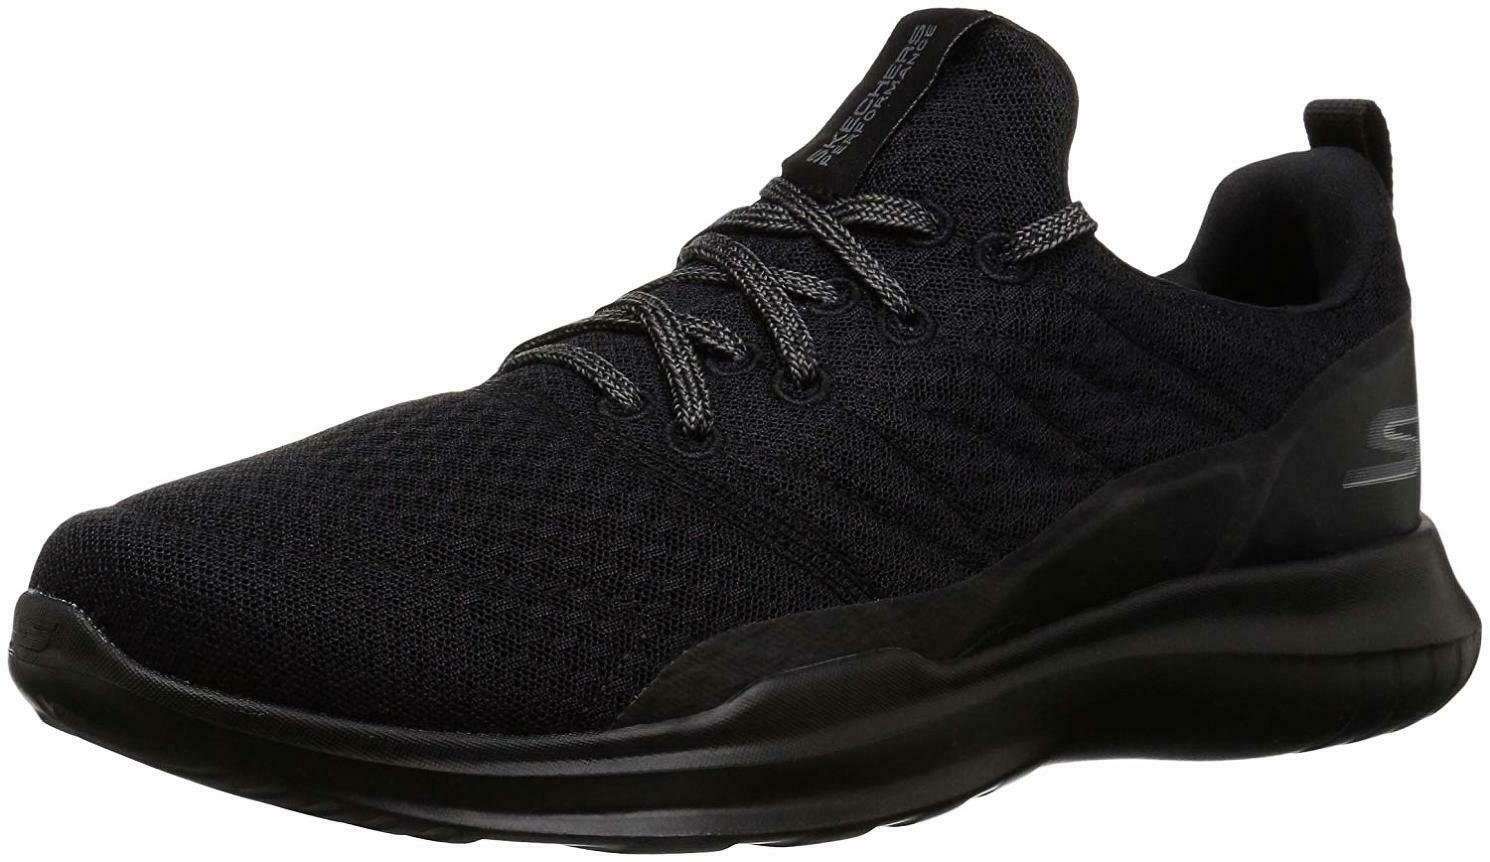 Homme Skechers Go courir Mojo 54845 paniers-Choisir Taille couleur